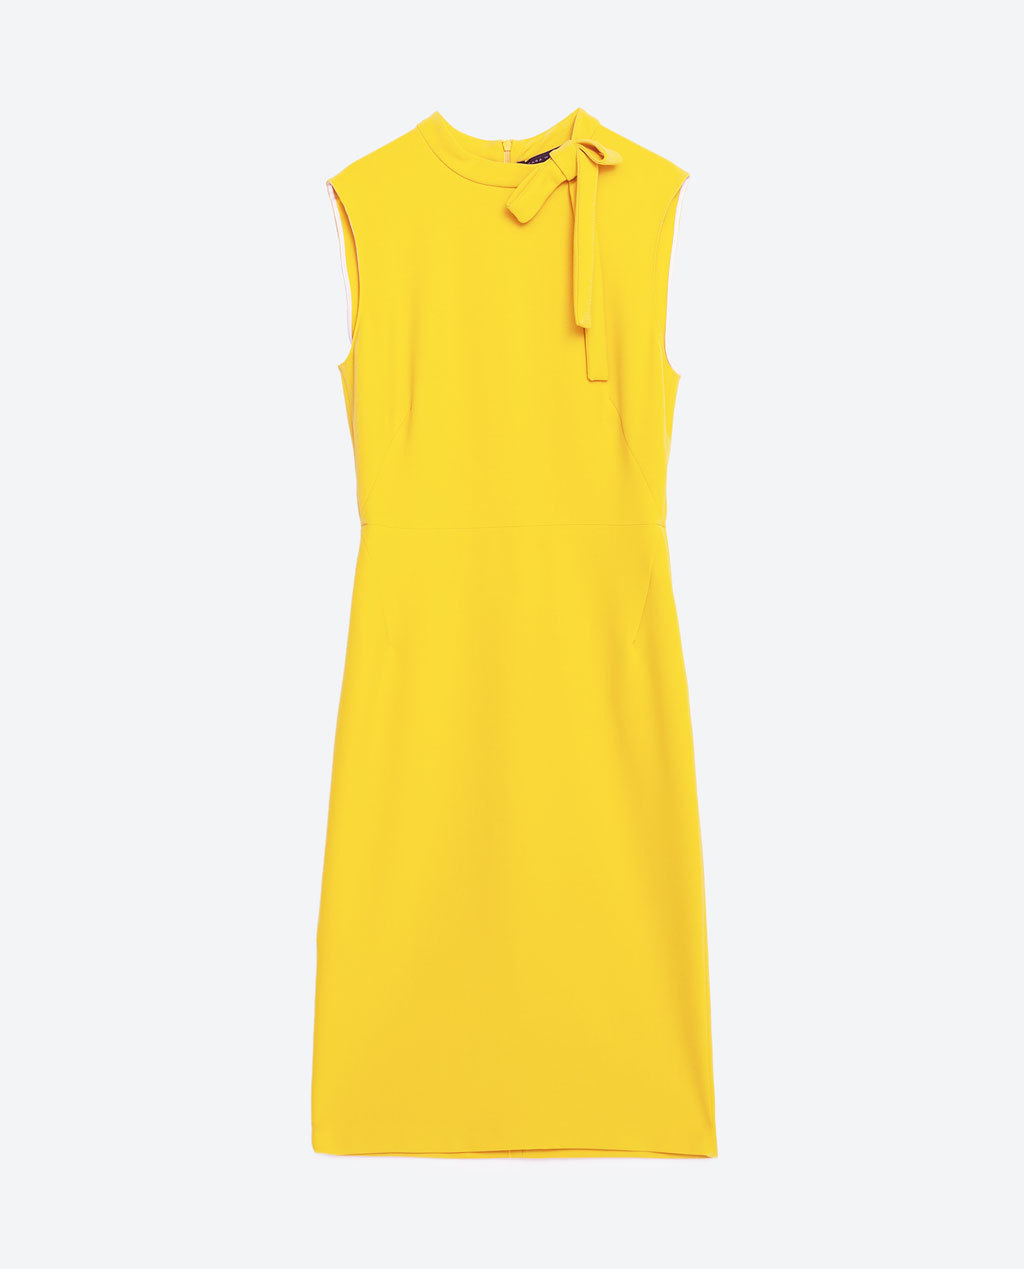 Tube Dress - style: shift; fit: tailored/fitted; pattern: plain; sleeve style: sleeveless; hip detail: draws attention to hips; predominant colour: yellow; length: just above the knee; fibres: polyester/polyamide - stretch; neckline: crew; sleeve length: sleeveless; texture group: crepes; pattern type: fabric; occasions: creative work; season: s/s 2016; wardrobe: highlight